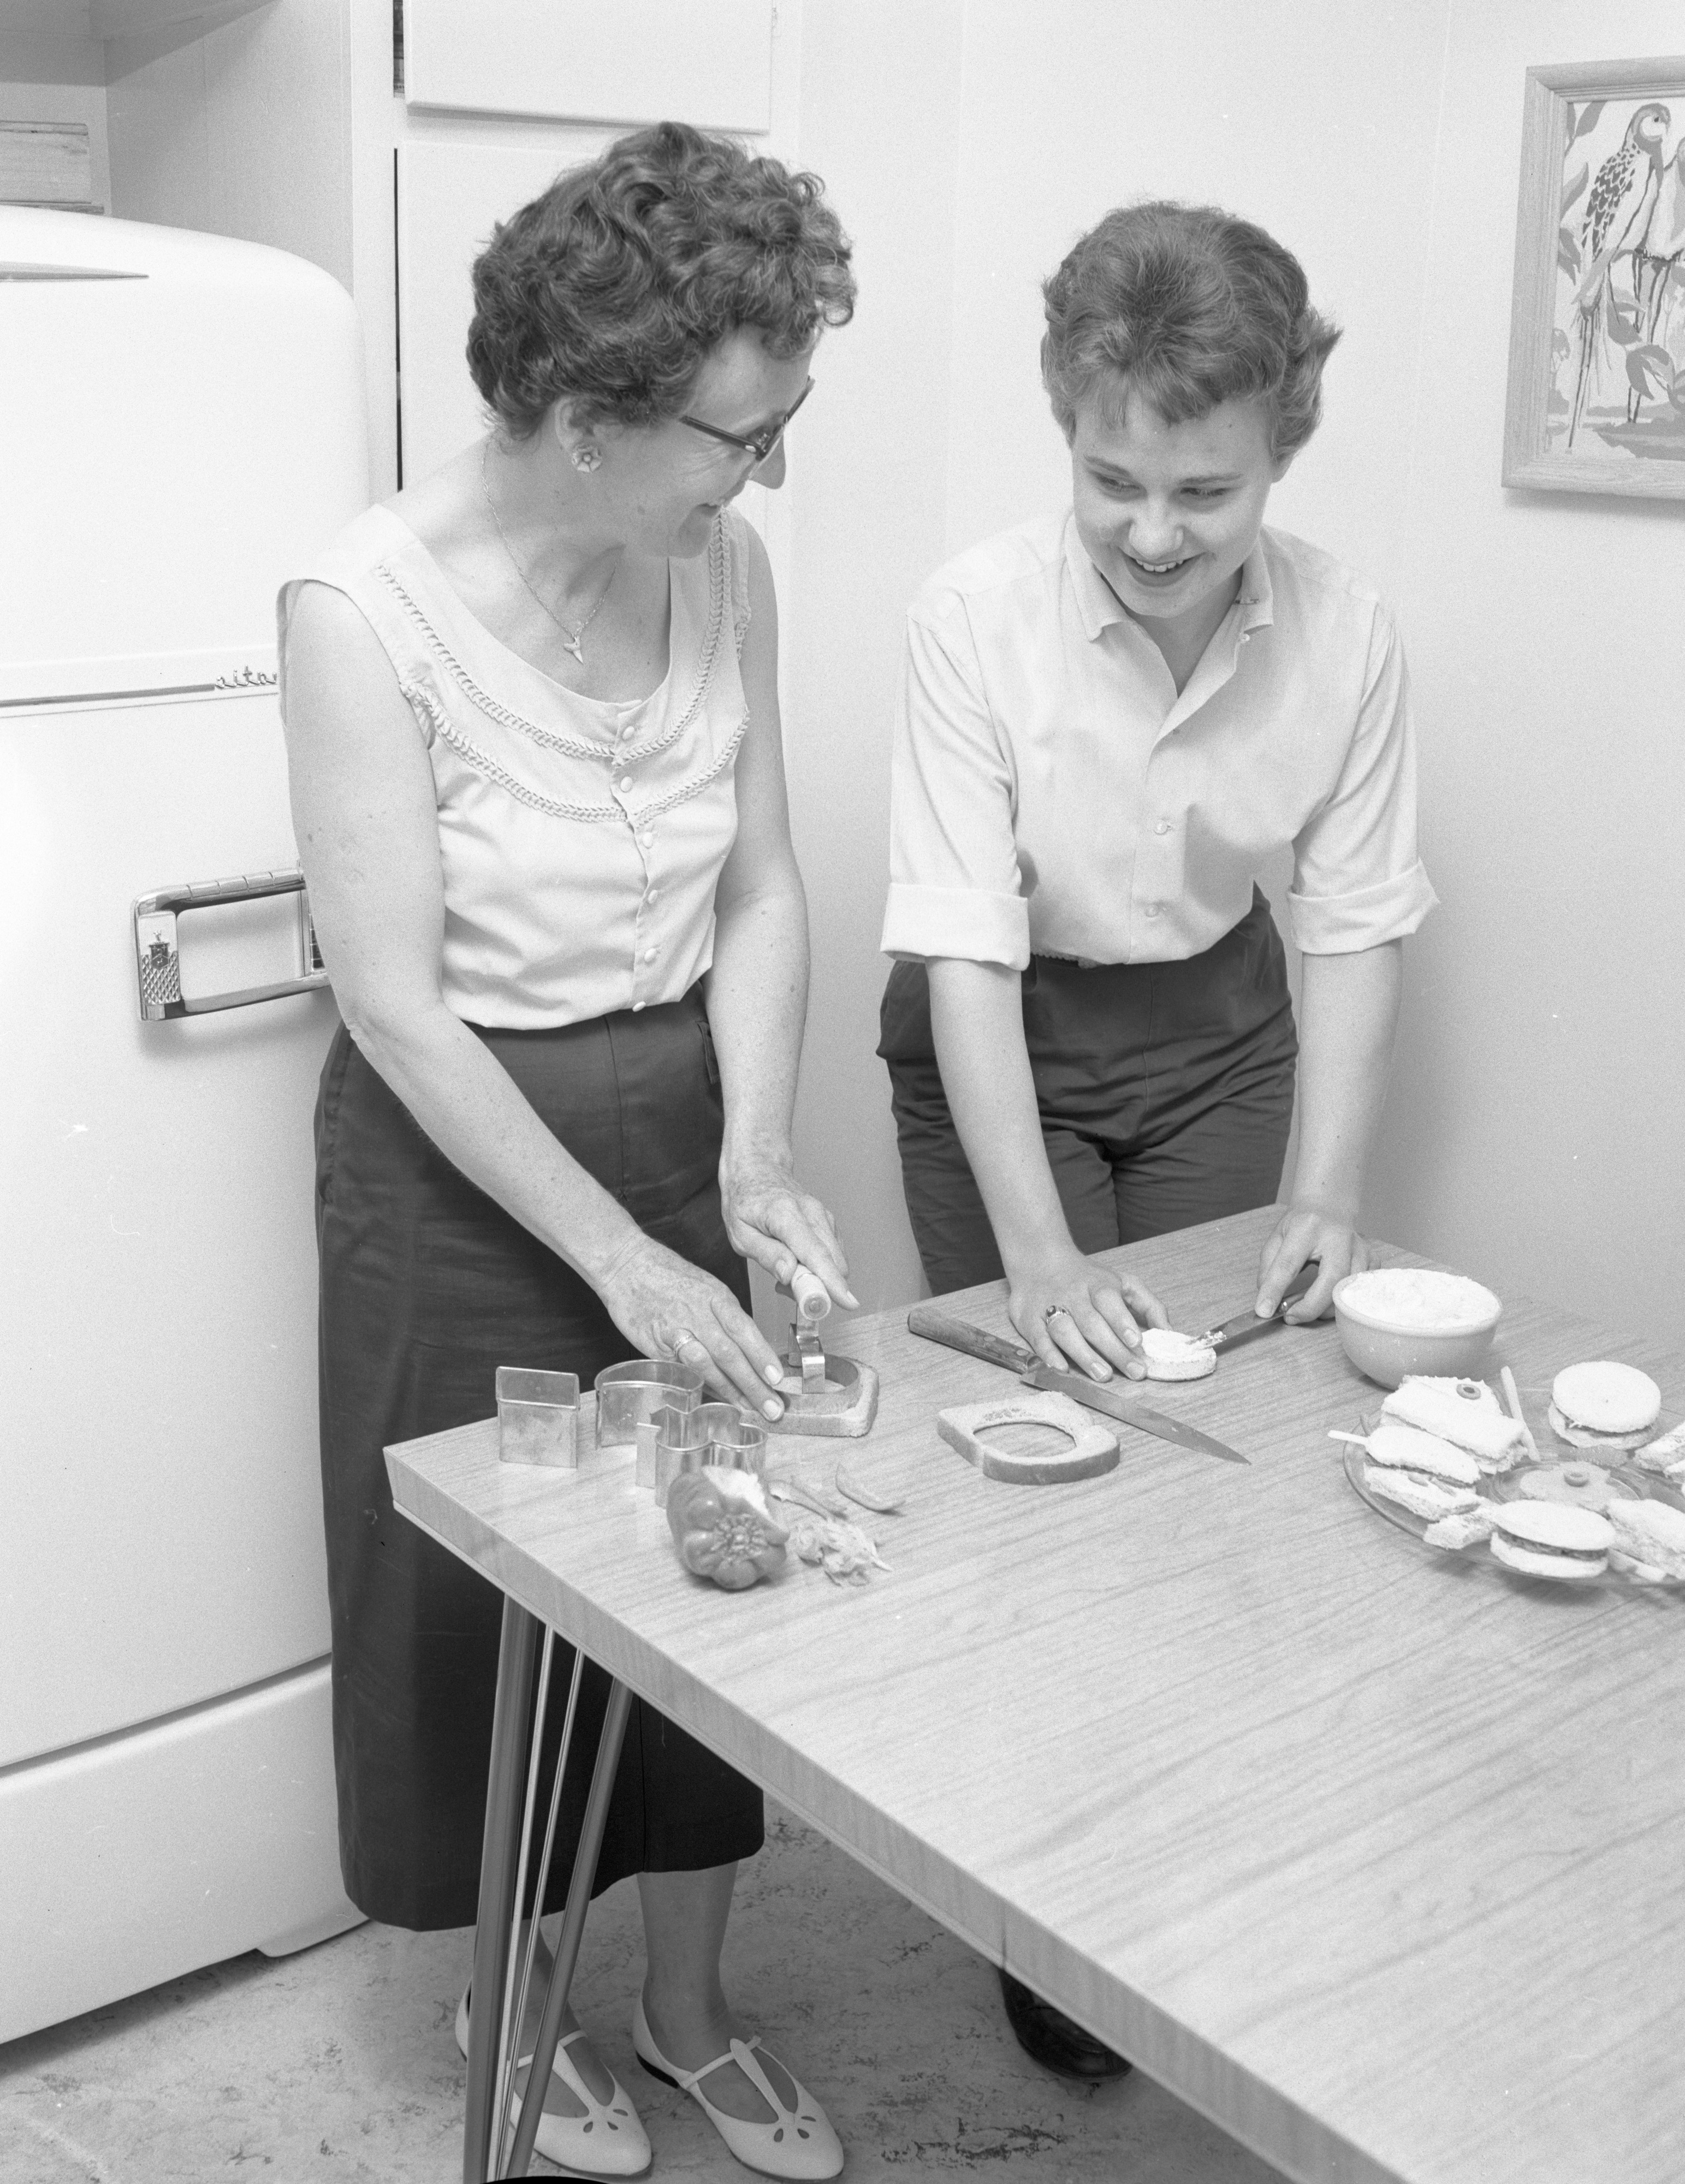 Rose & Claudia Eckhoff Make Party Sandwiches, June 1959 image